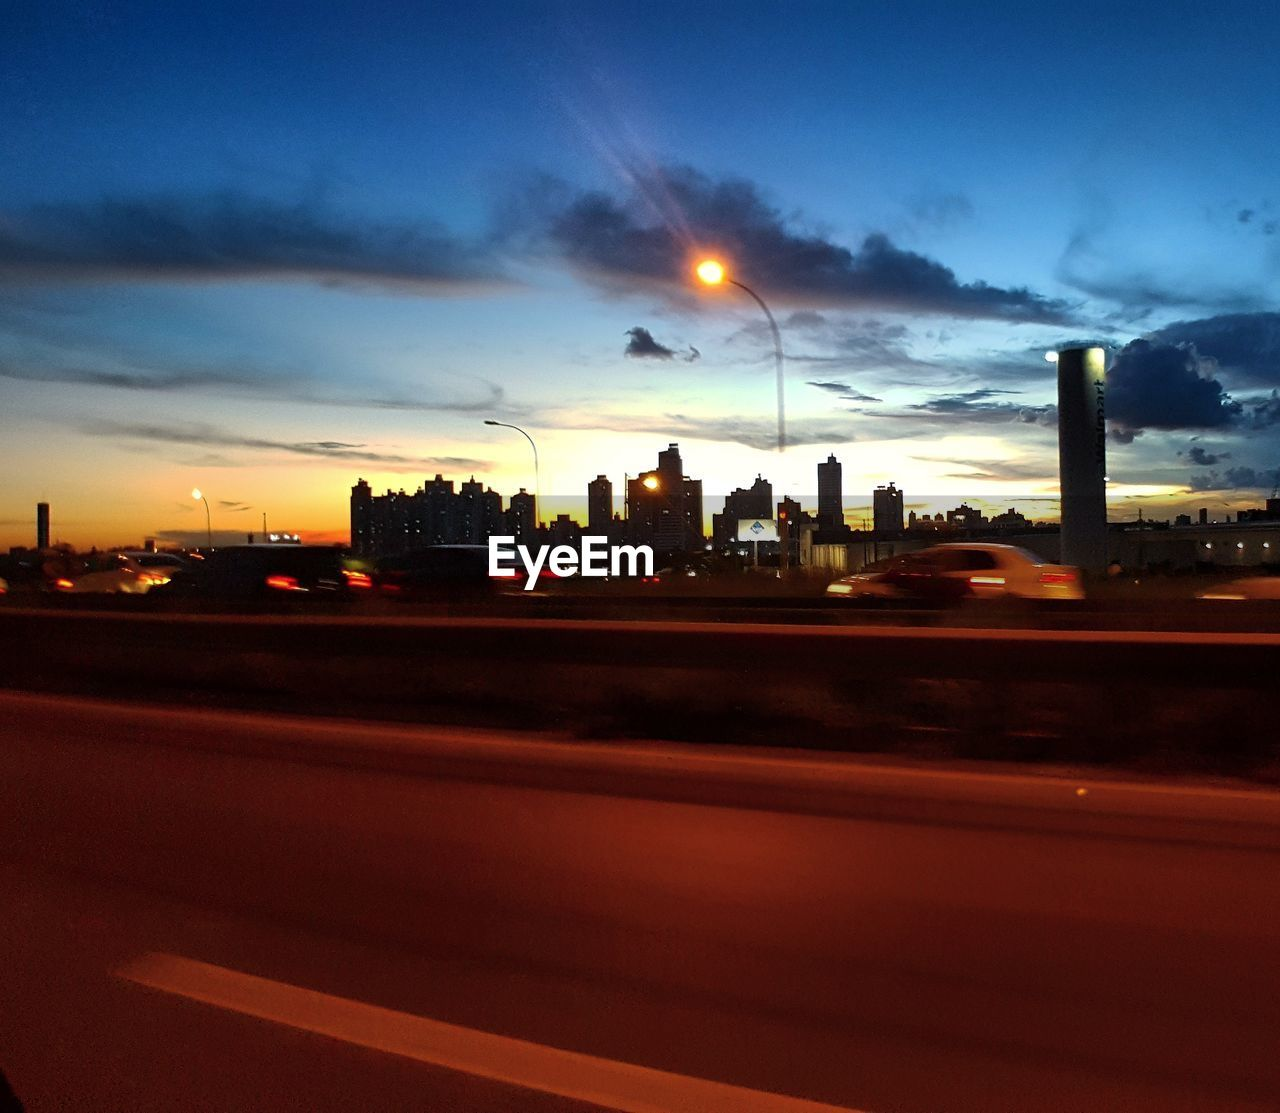 sky, illuminated, cloud - sky, built structure, sunset, architecture, no people, building exterior, road, city, night, travel destinations, cityscape, outdoors, skyscraper, nature